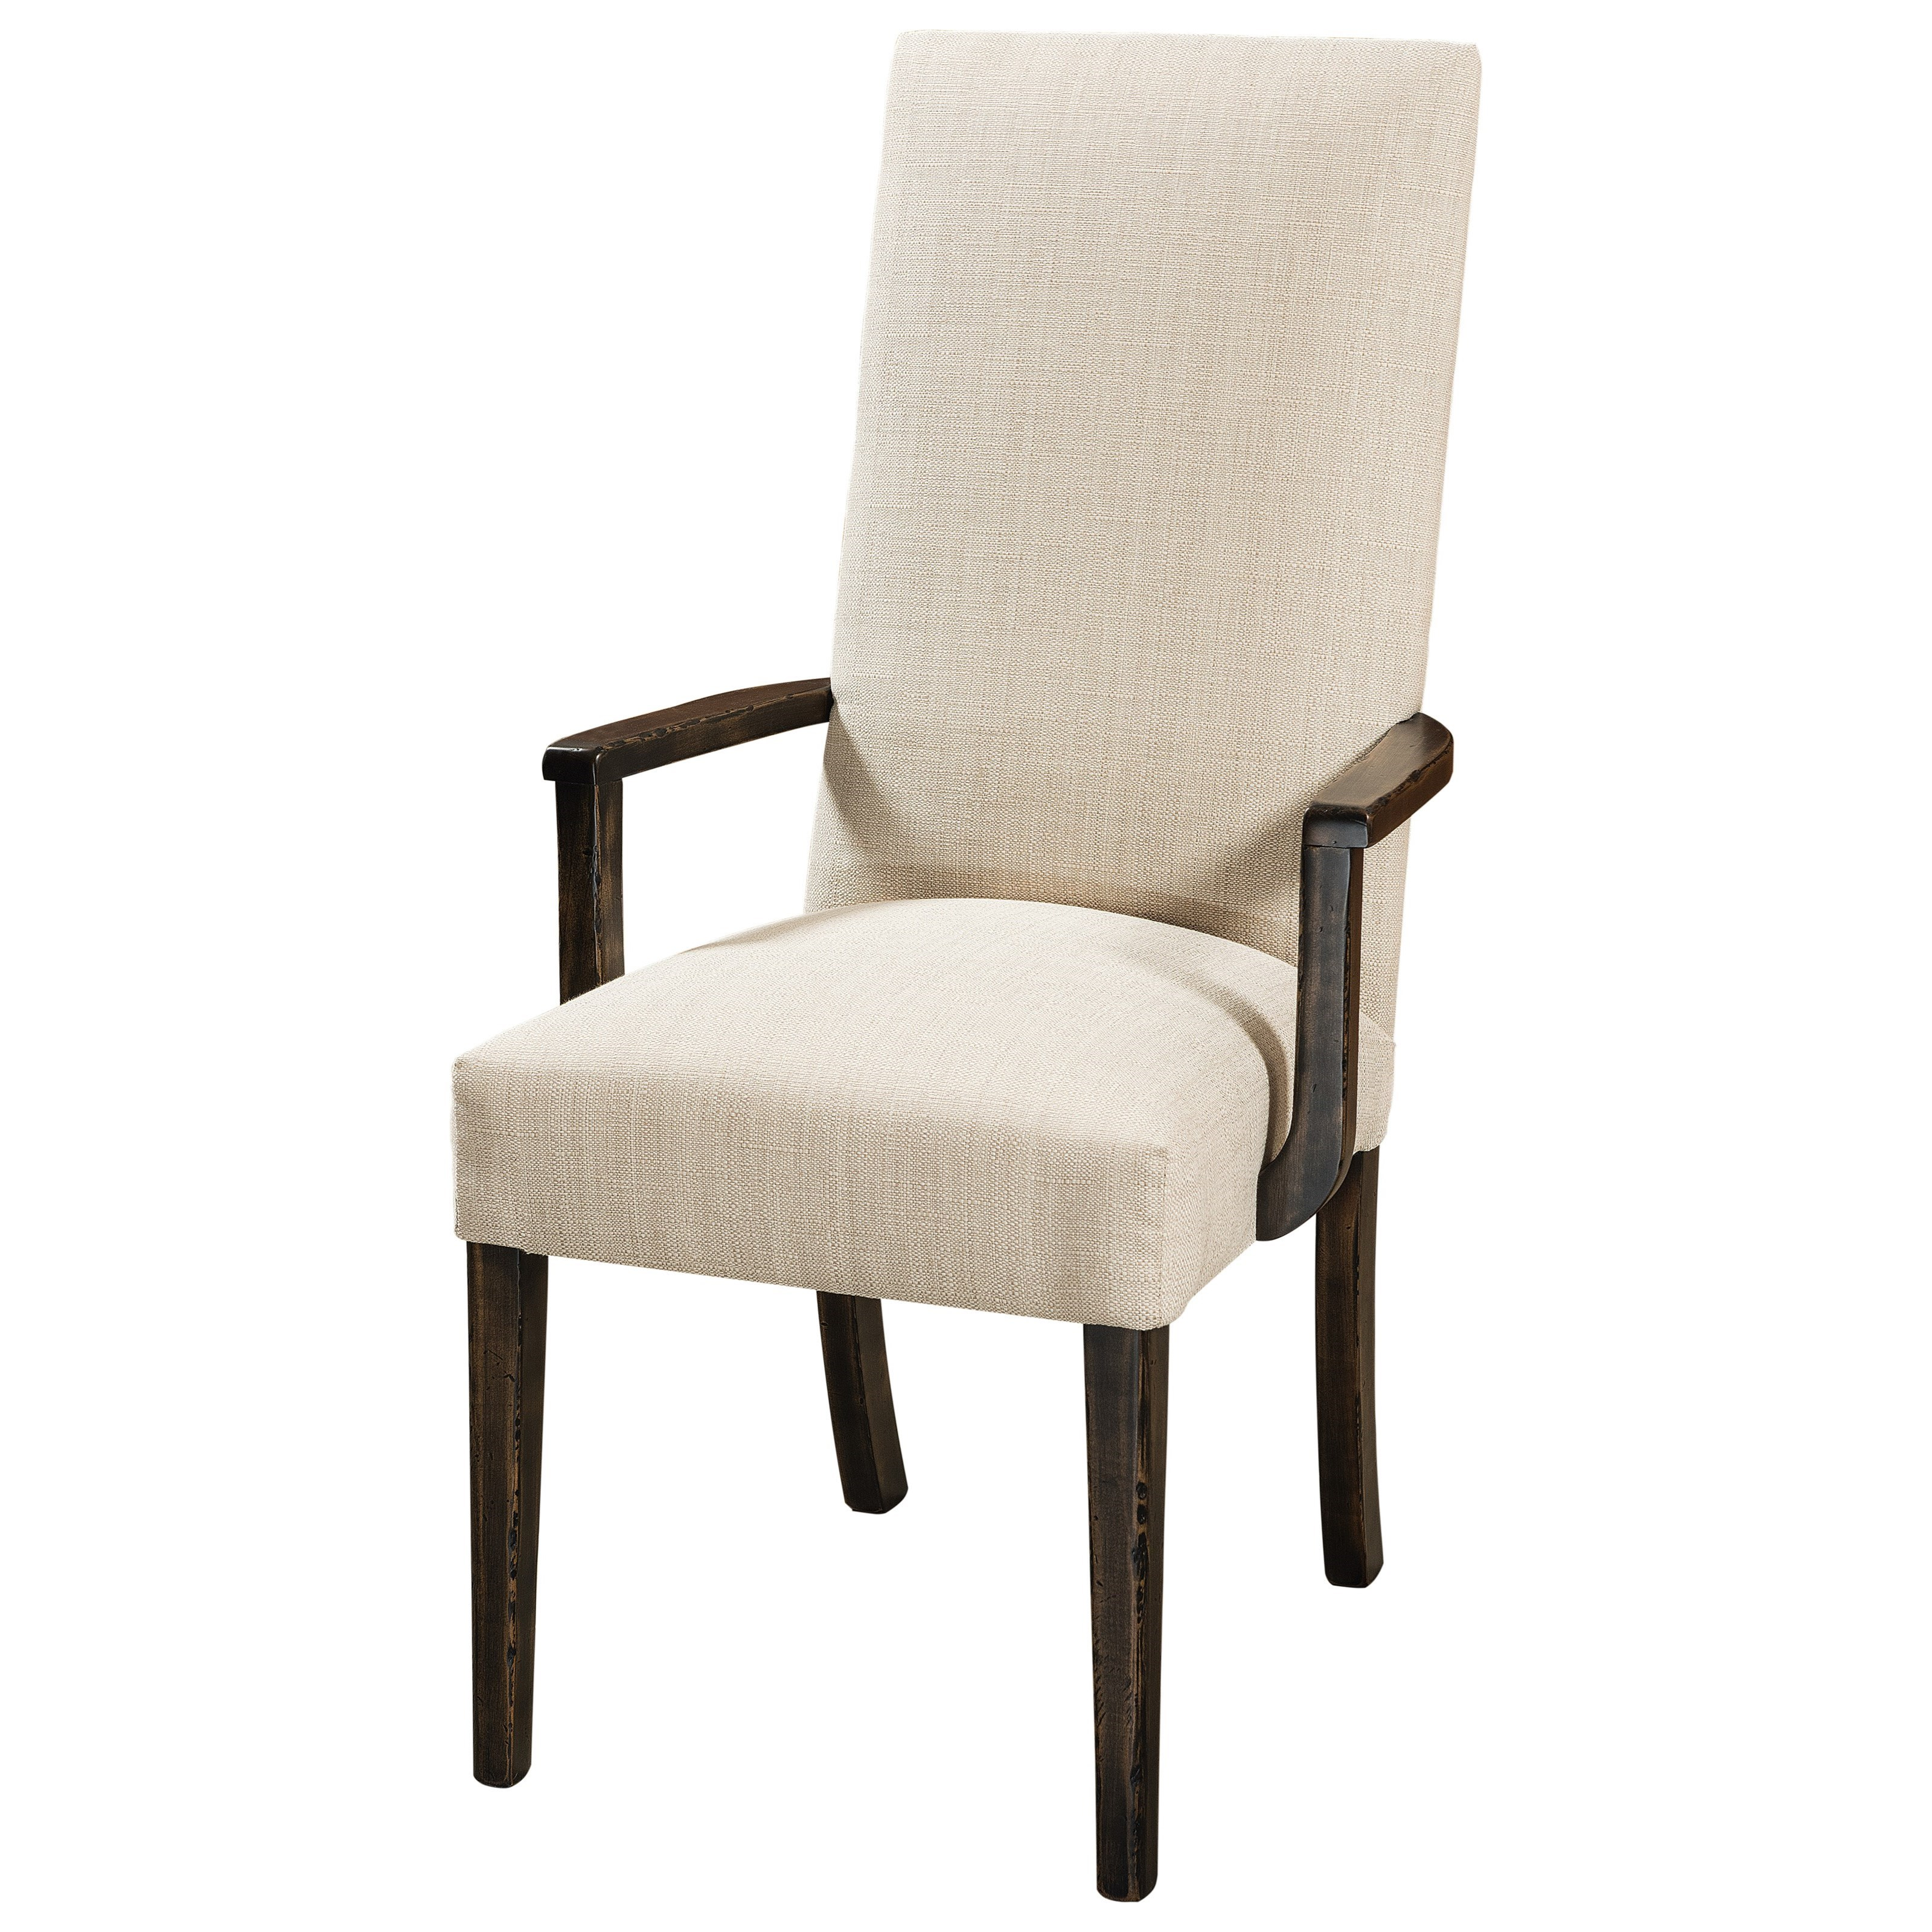 Sheldon Customizable Solid Wood Dining Arm Chair by F&N Woodworking at Saugerties Furniture Mart